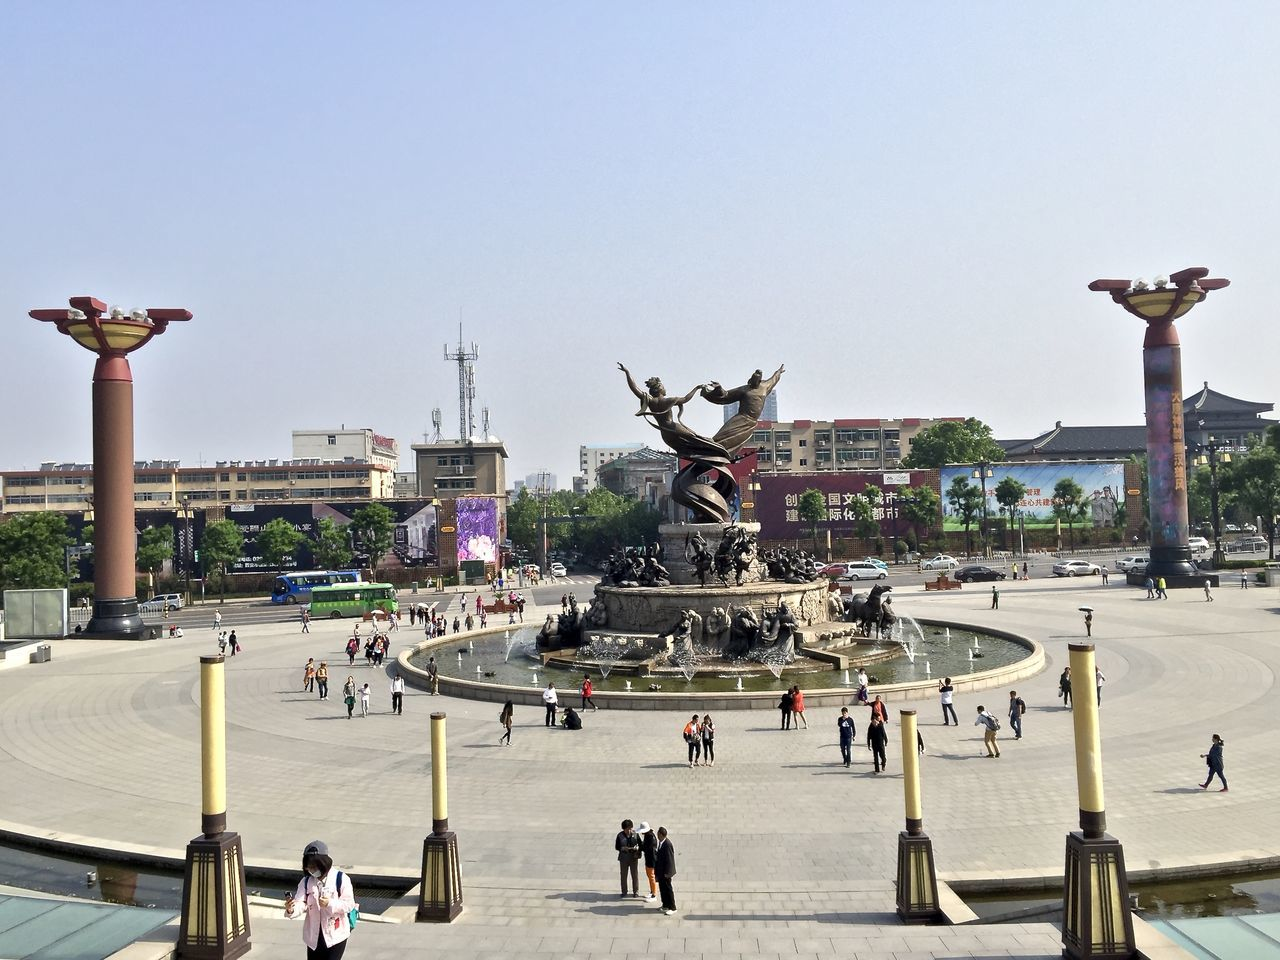 statue, sculpture, art and craft, large group of people, human representation, monument, built structure, travel destinations, architecture, memorial, history, clear sky, arts culture and entertainment, day, lifestyles, outdoors, city, real people, sky, crowd, king - royal person, people